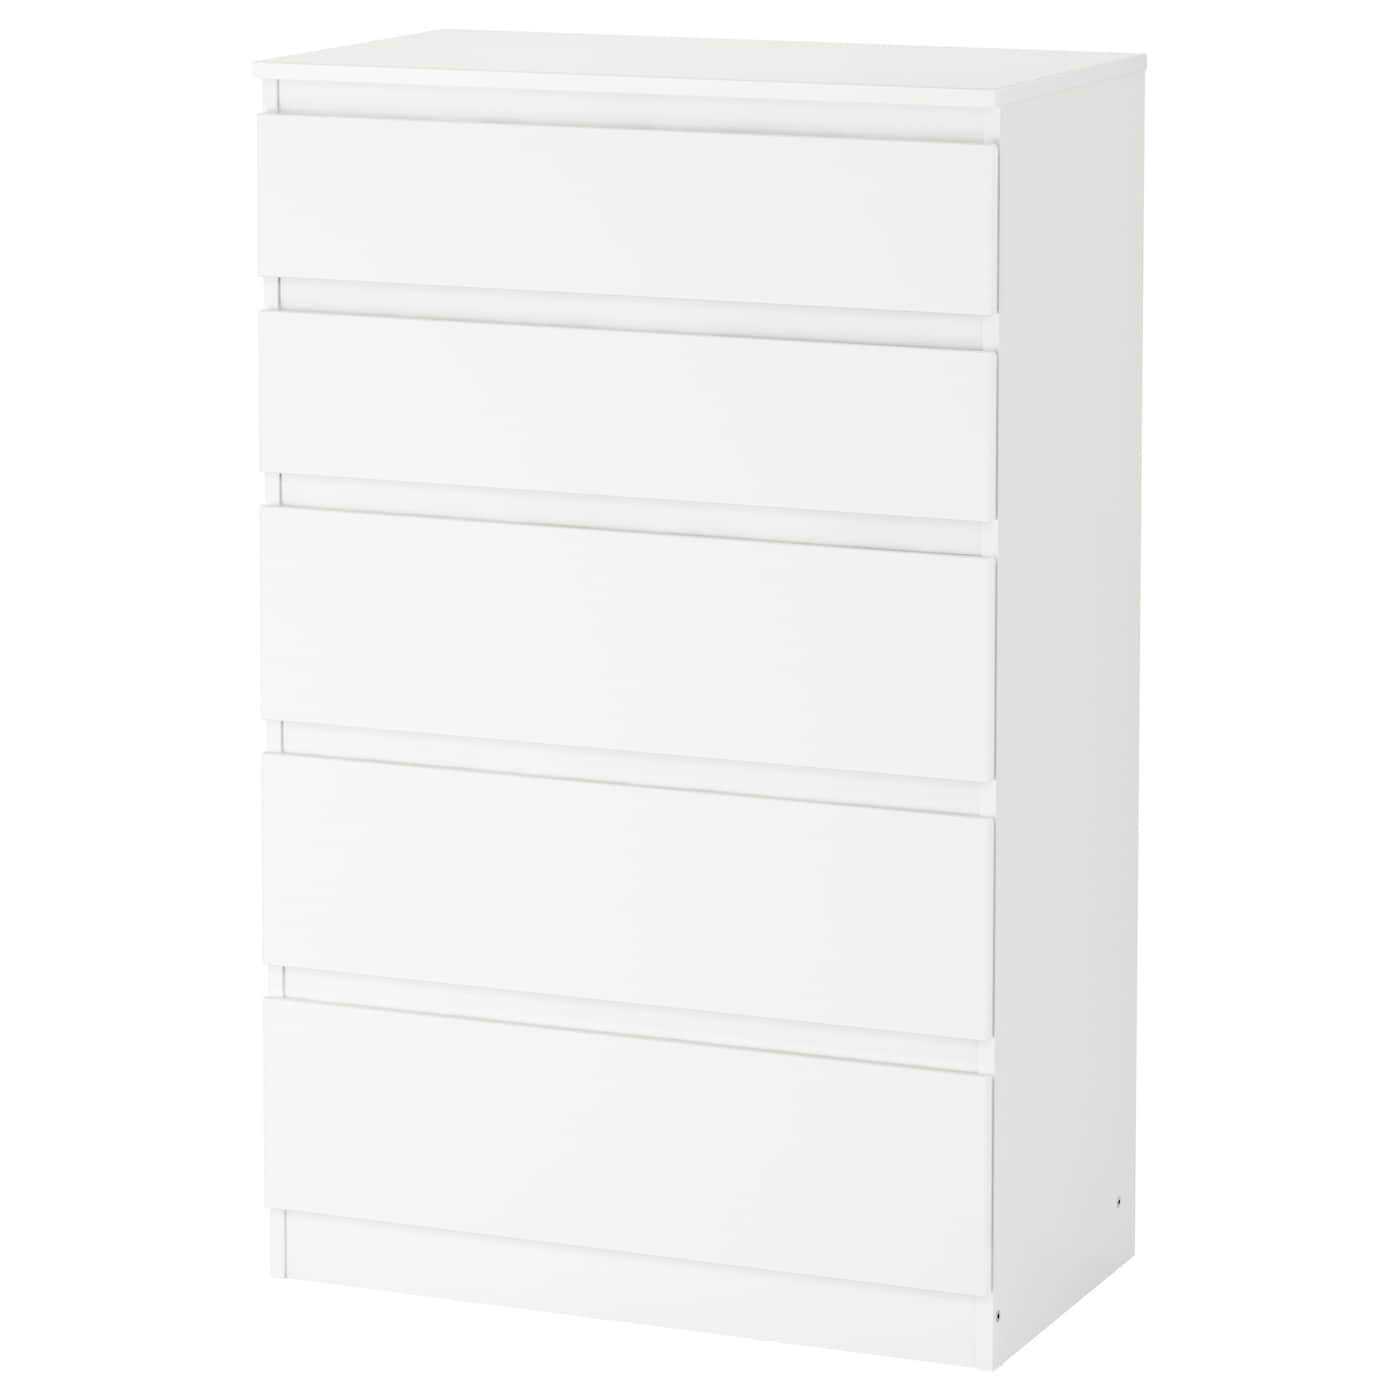 IKEA KULLEN chest of 5 drawers